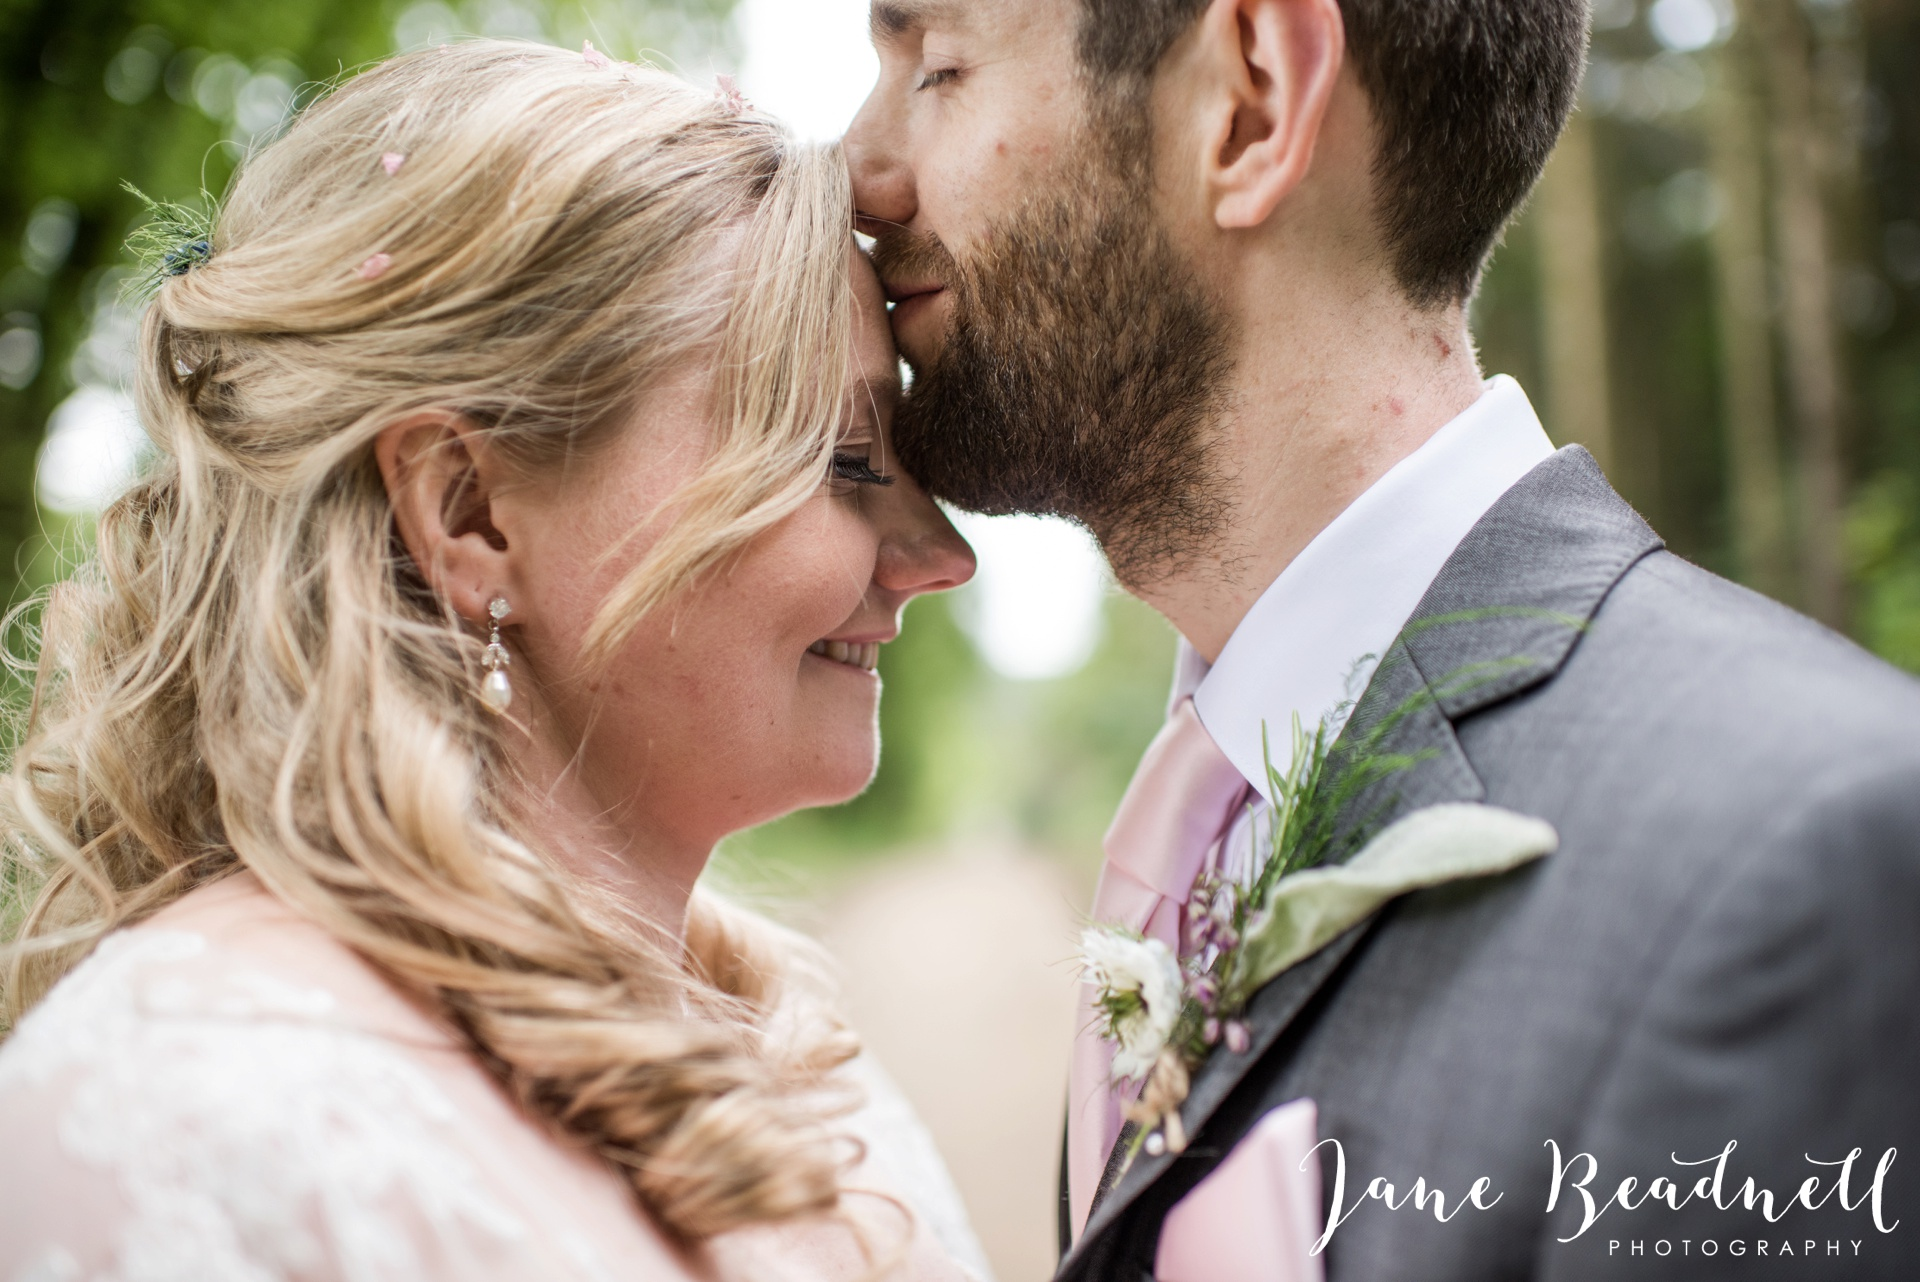 Yorkshire Wedding Photography the cheerful Chilli Barn Wedding by Jane Beadnell Photography_0129